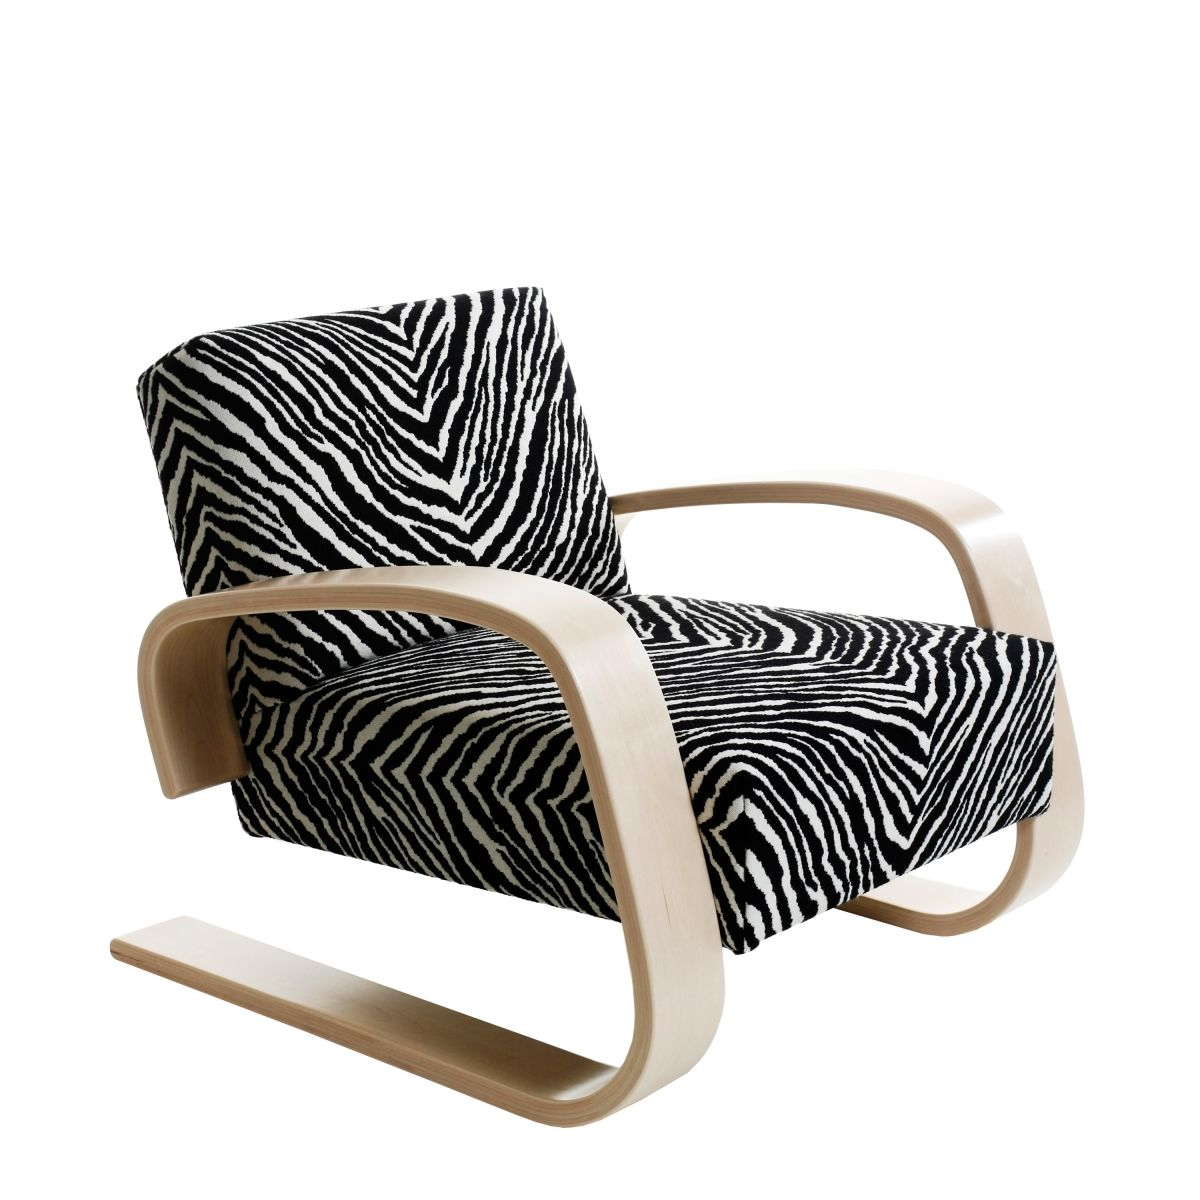 Armchair-400-_Tank_-Clear-Lacquer-Zebra_Web-1975913